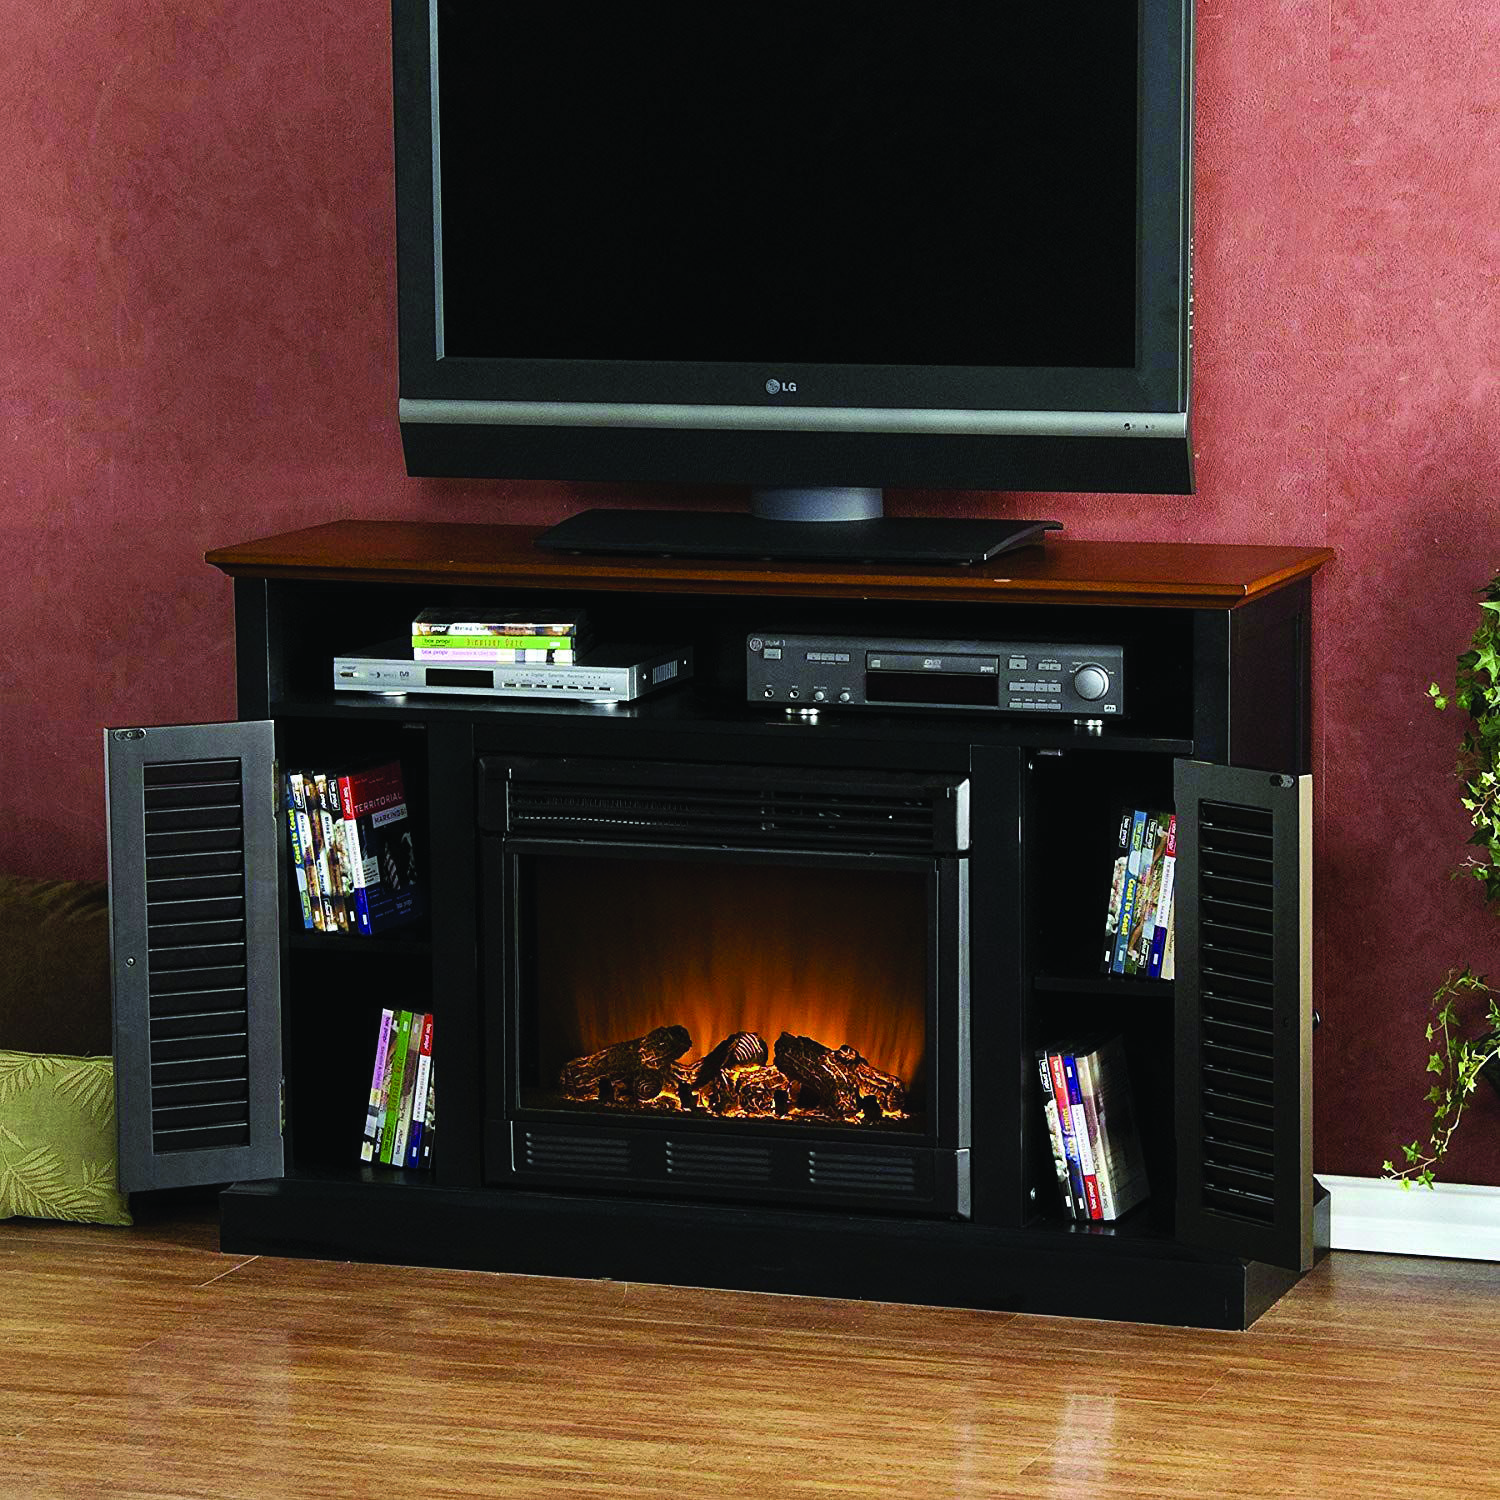 Terrific Fireplace Tv Stand Black Friday Sale One And Only